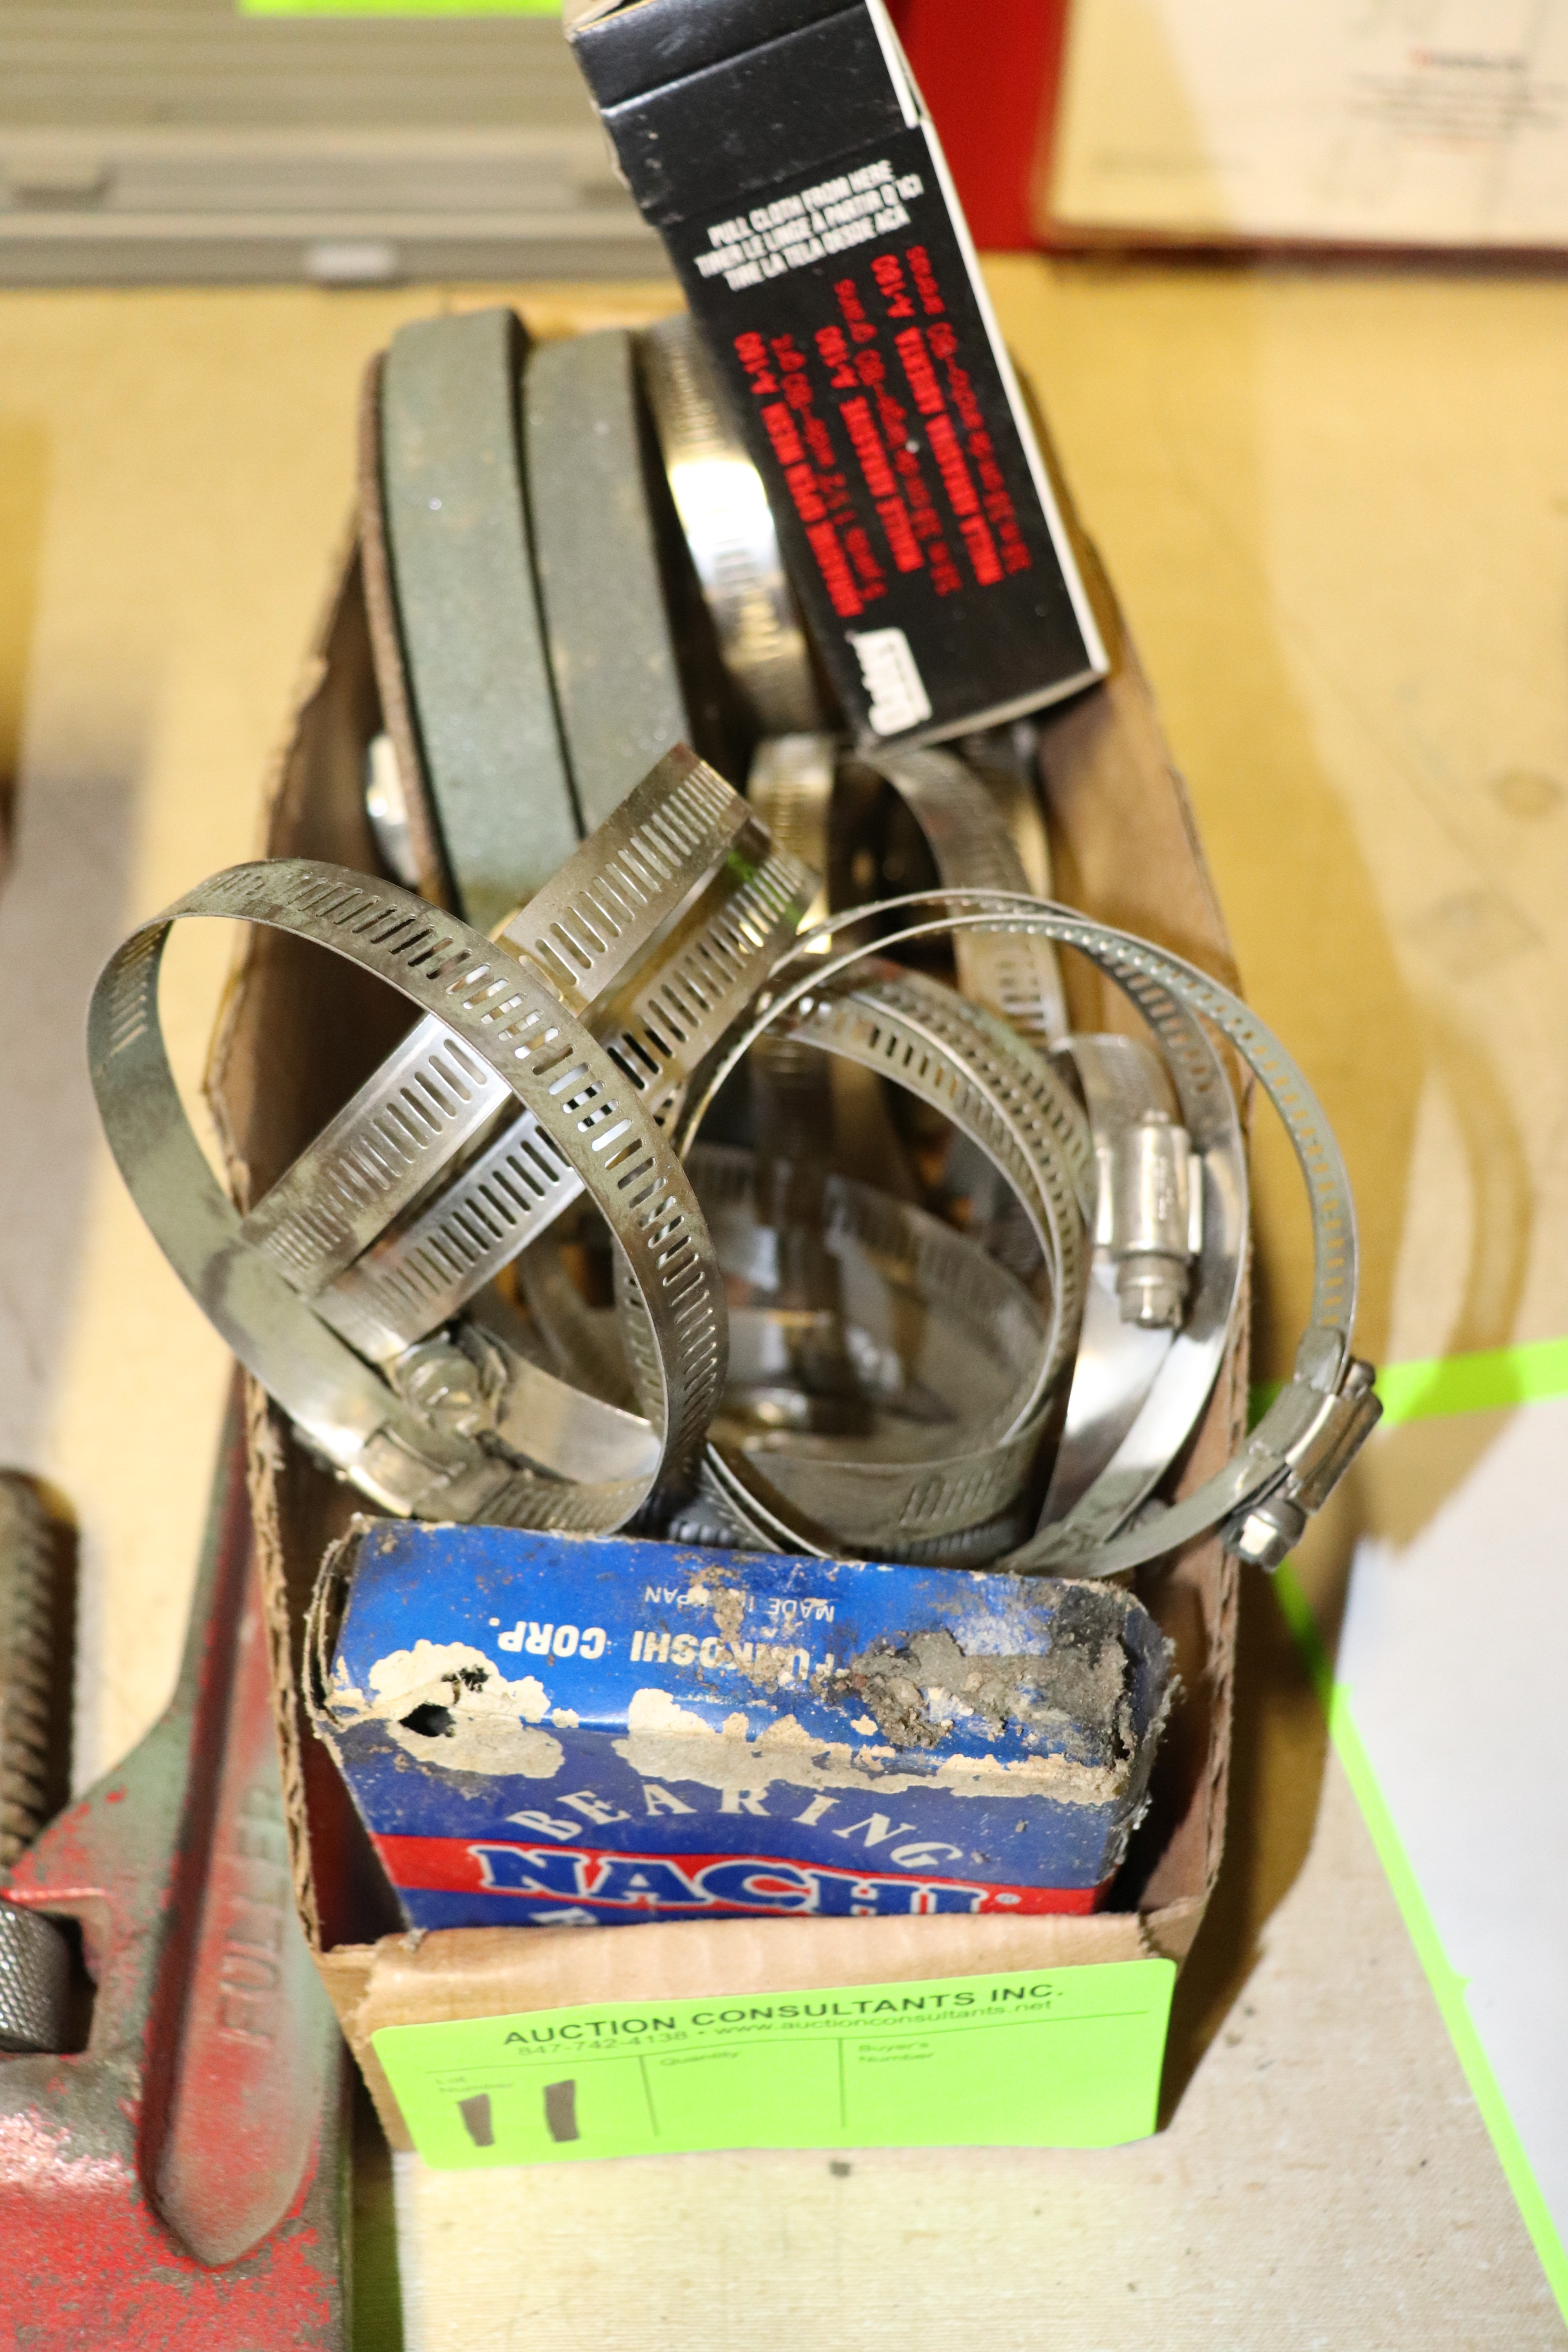 Lot 11 - Ball bearings, abrasive wheels and pipe clamps